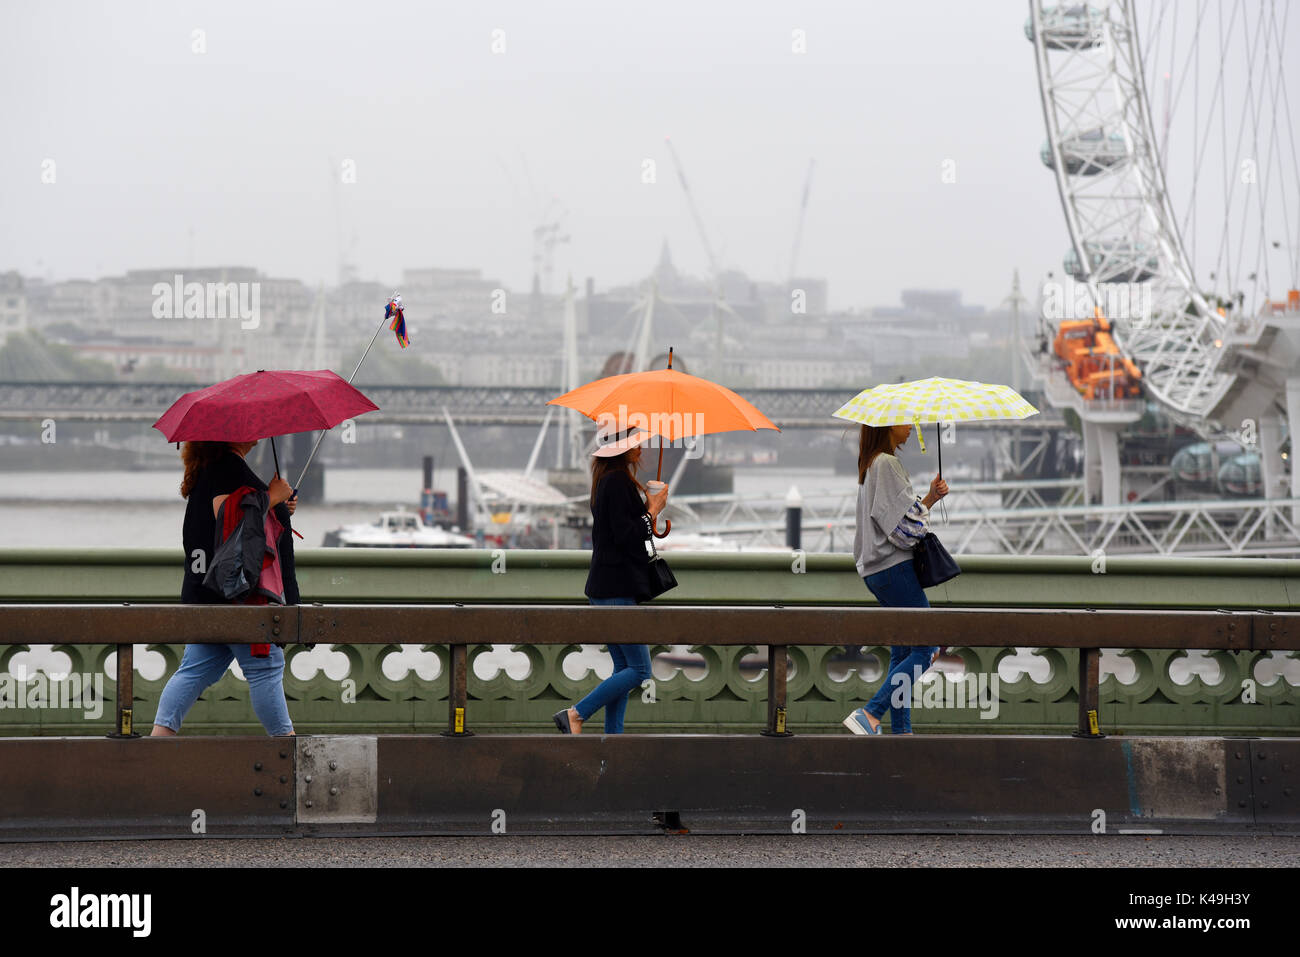 females-crossing-westminster-bridge-walking-with-bright-umbrellas-K49H3Y.jpg